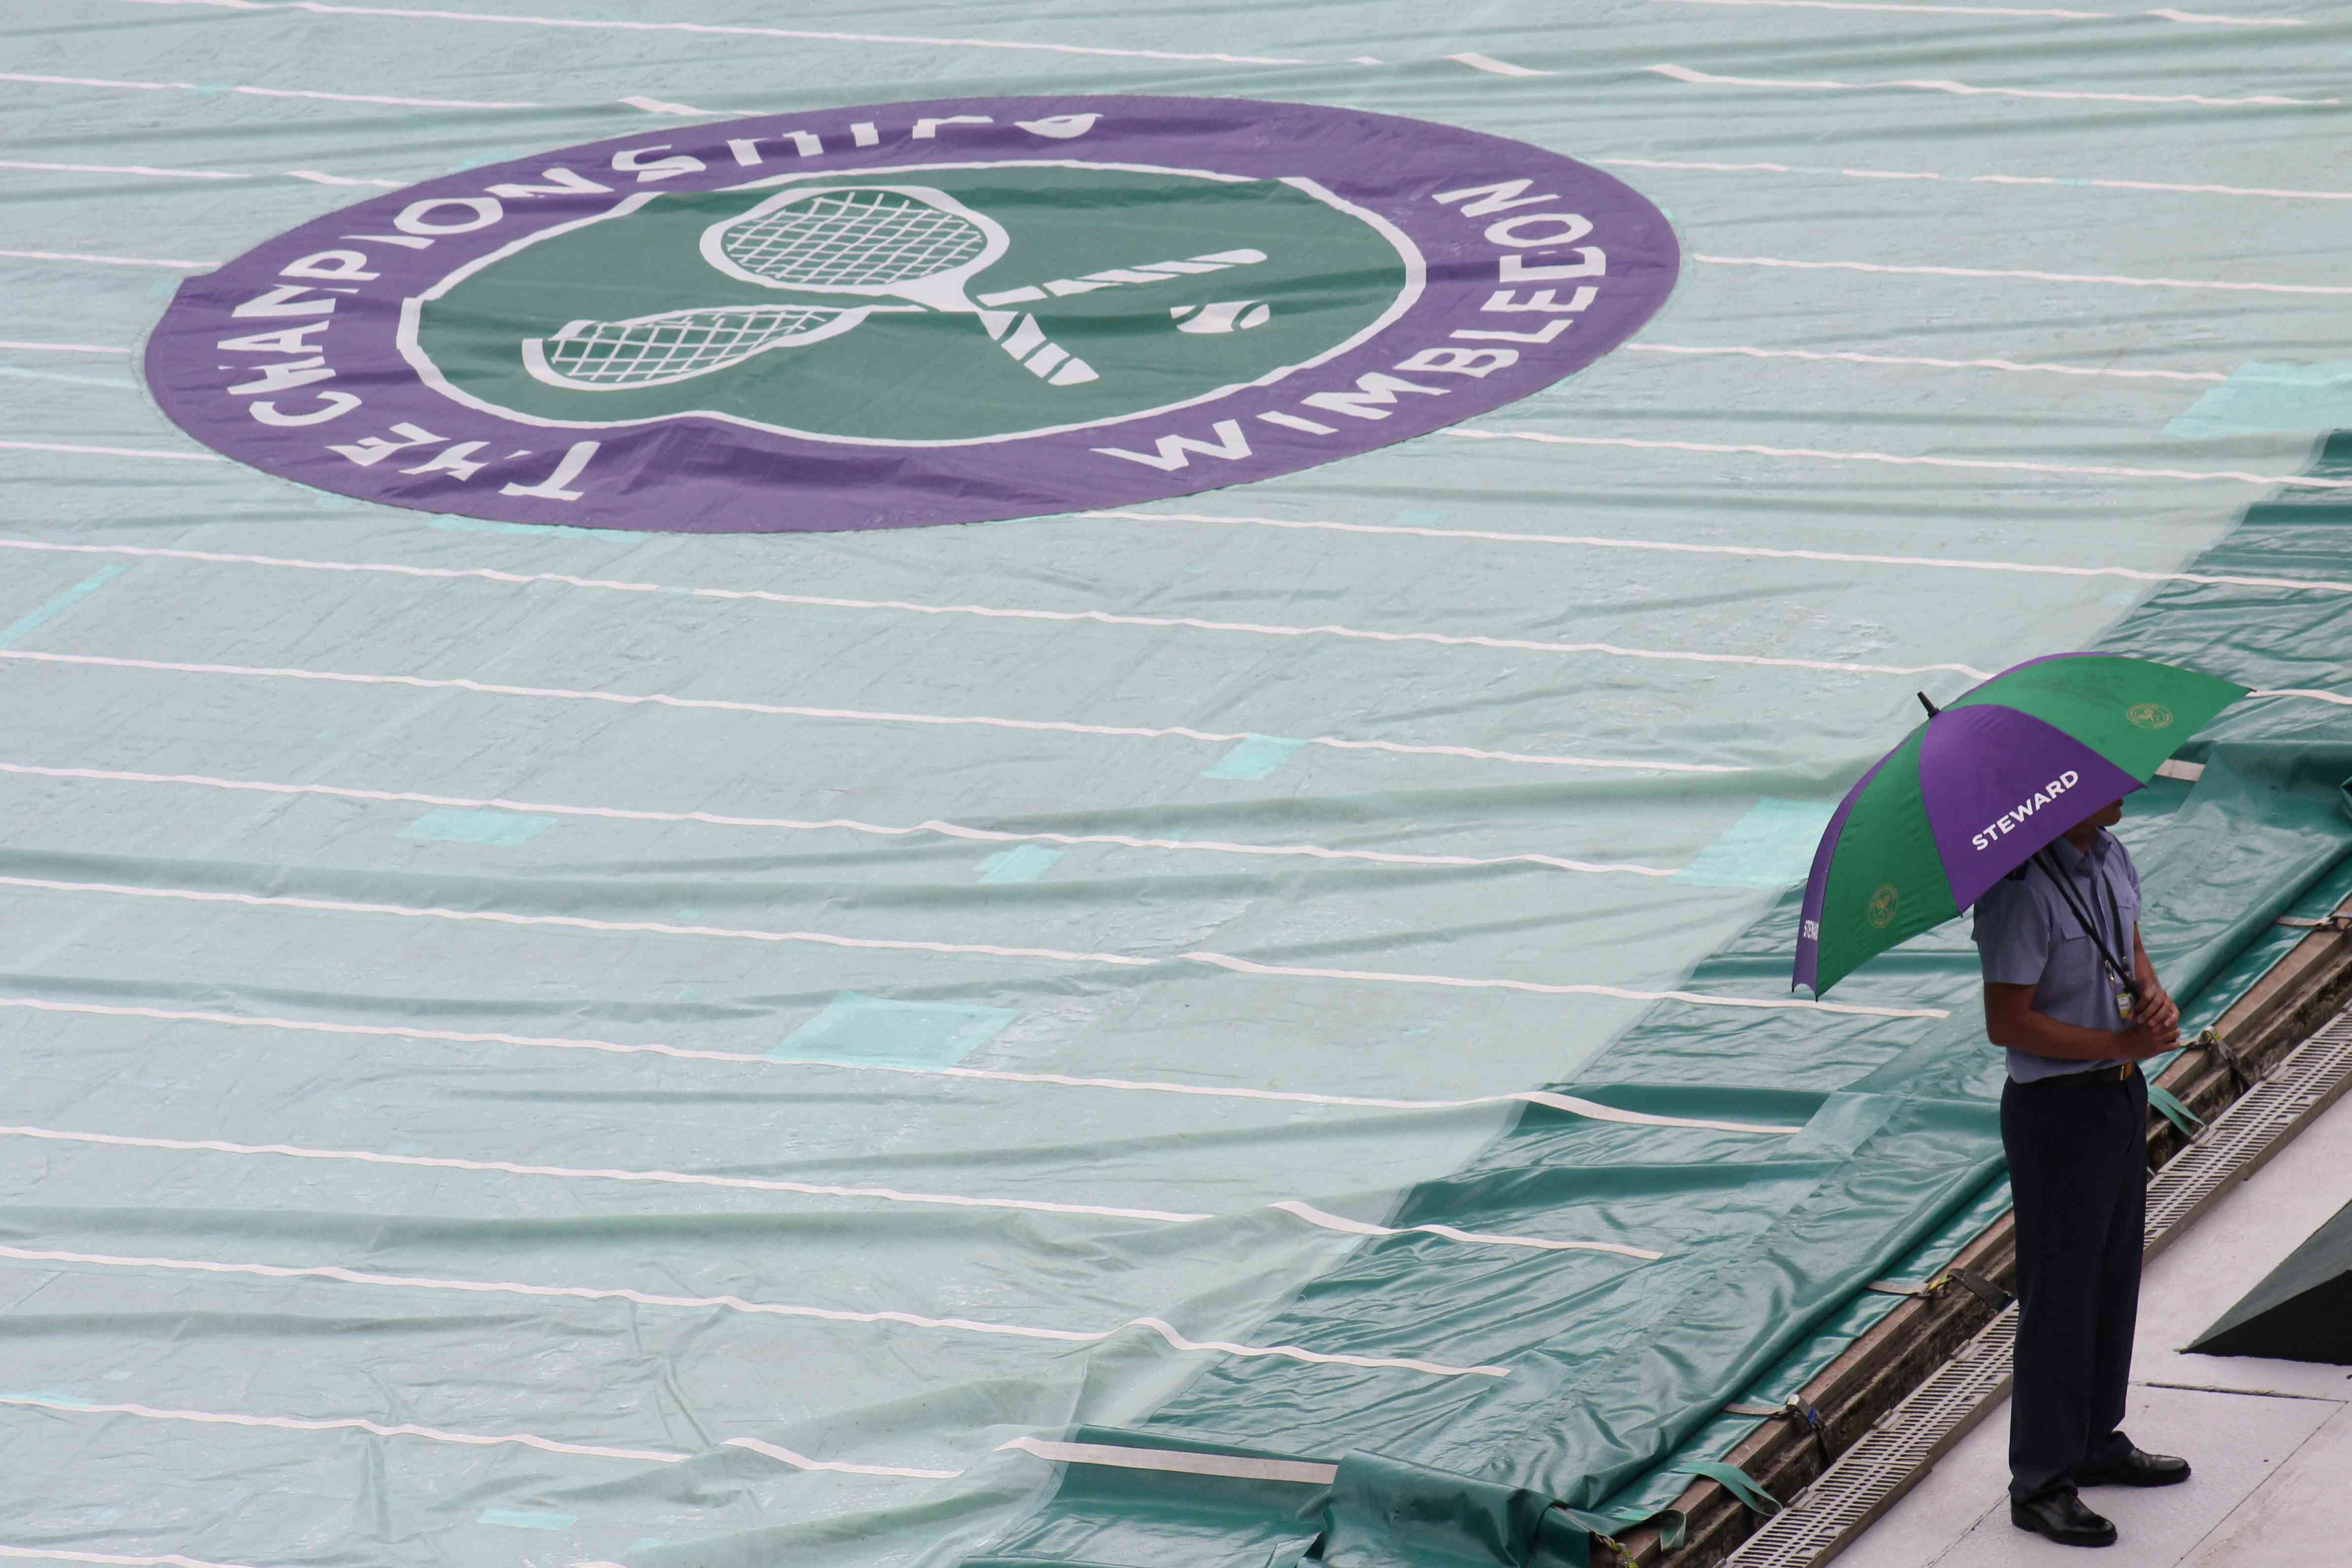 Wimbledon Cover and brolly